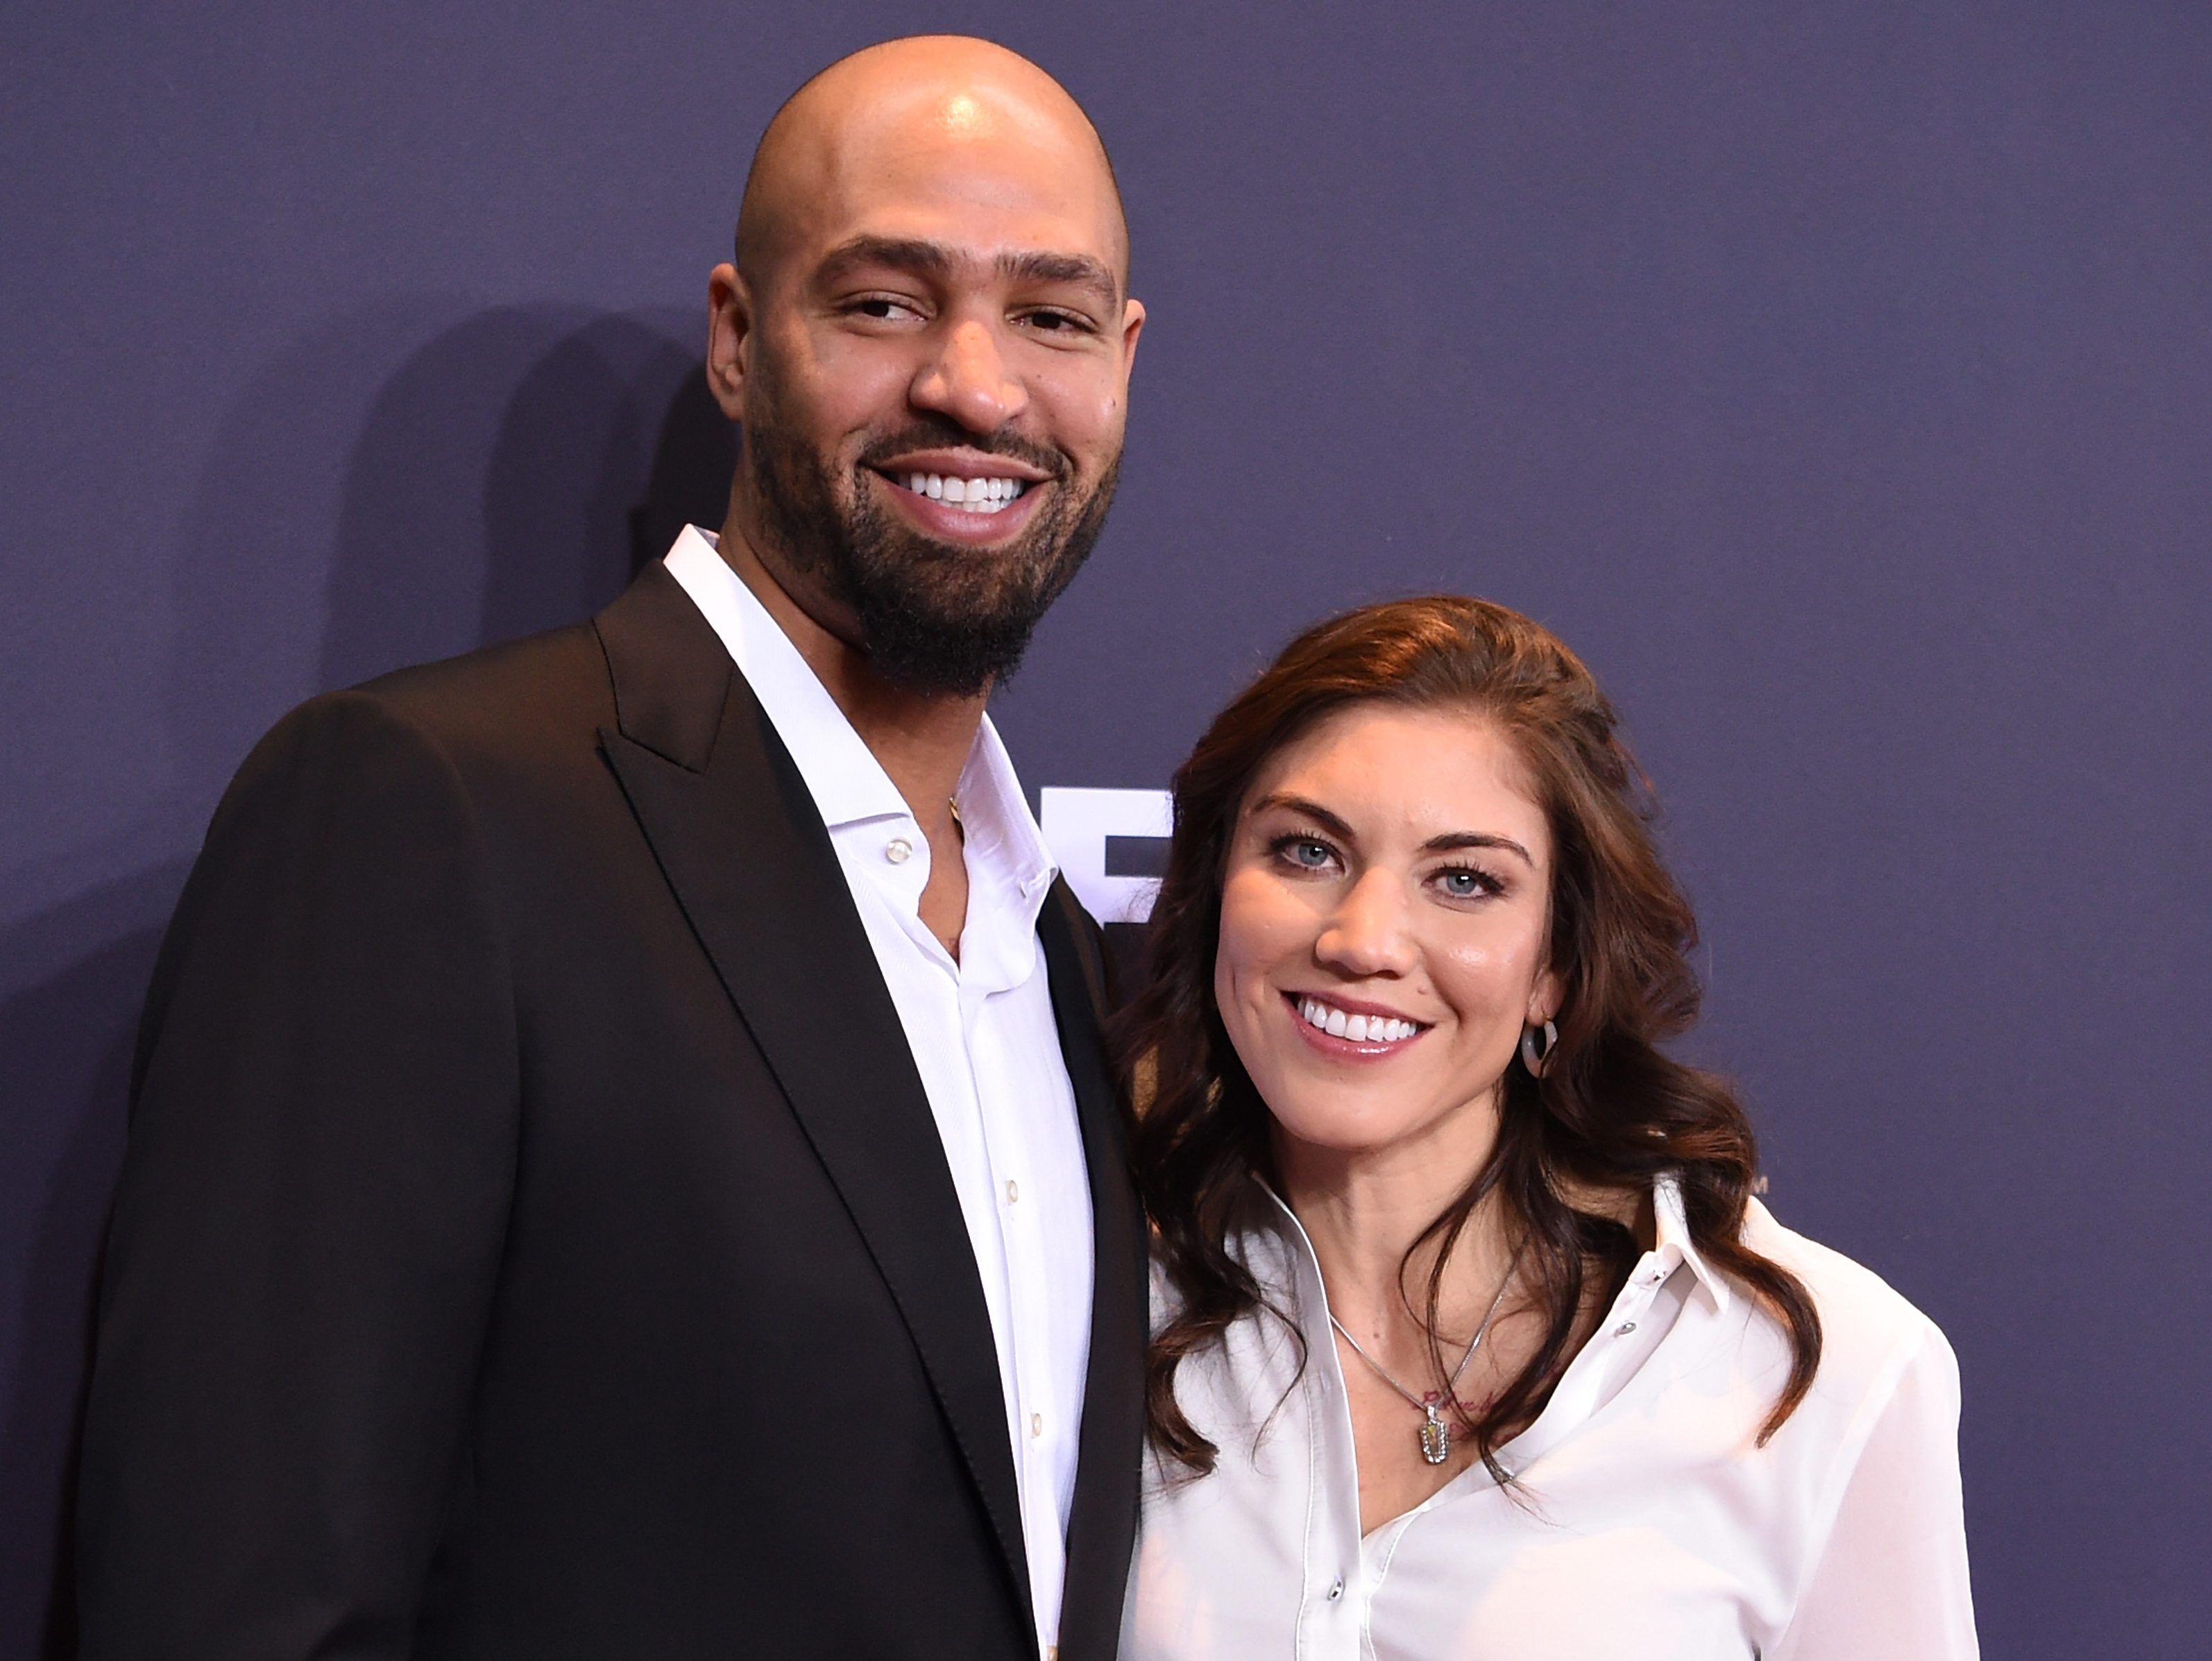 Hope Solo and Jerramy Stevens attend the FIFA Ballon d'Or Gala 2015 at the Kongresshaus on Jan. 11, 2016 in Zurich, Switzerland.